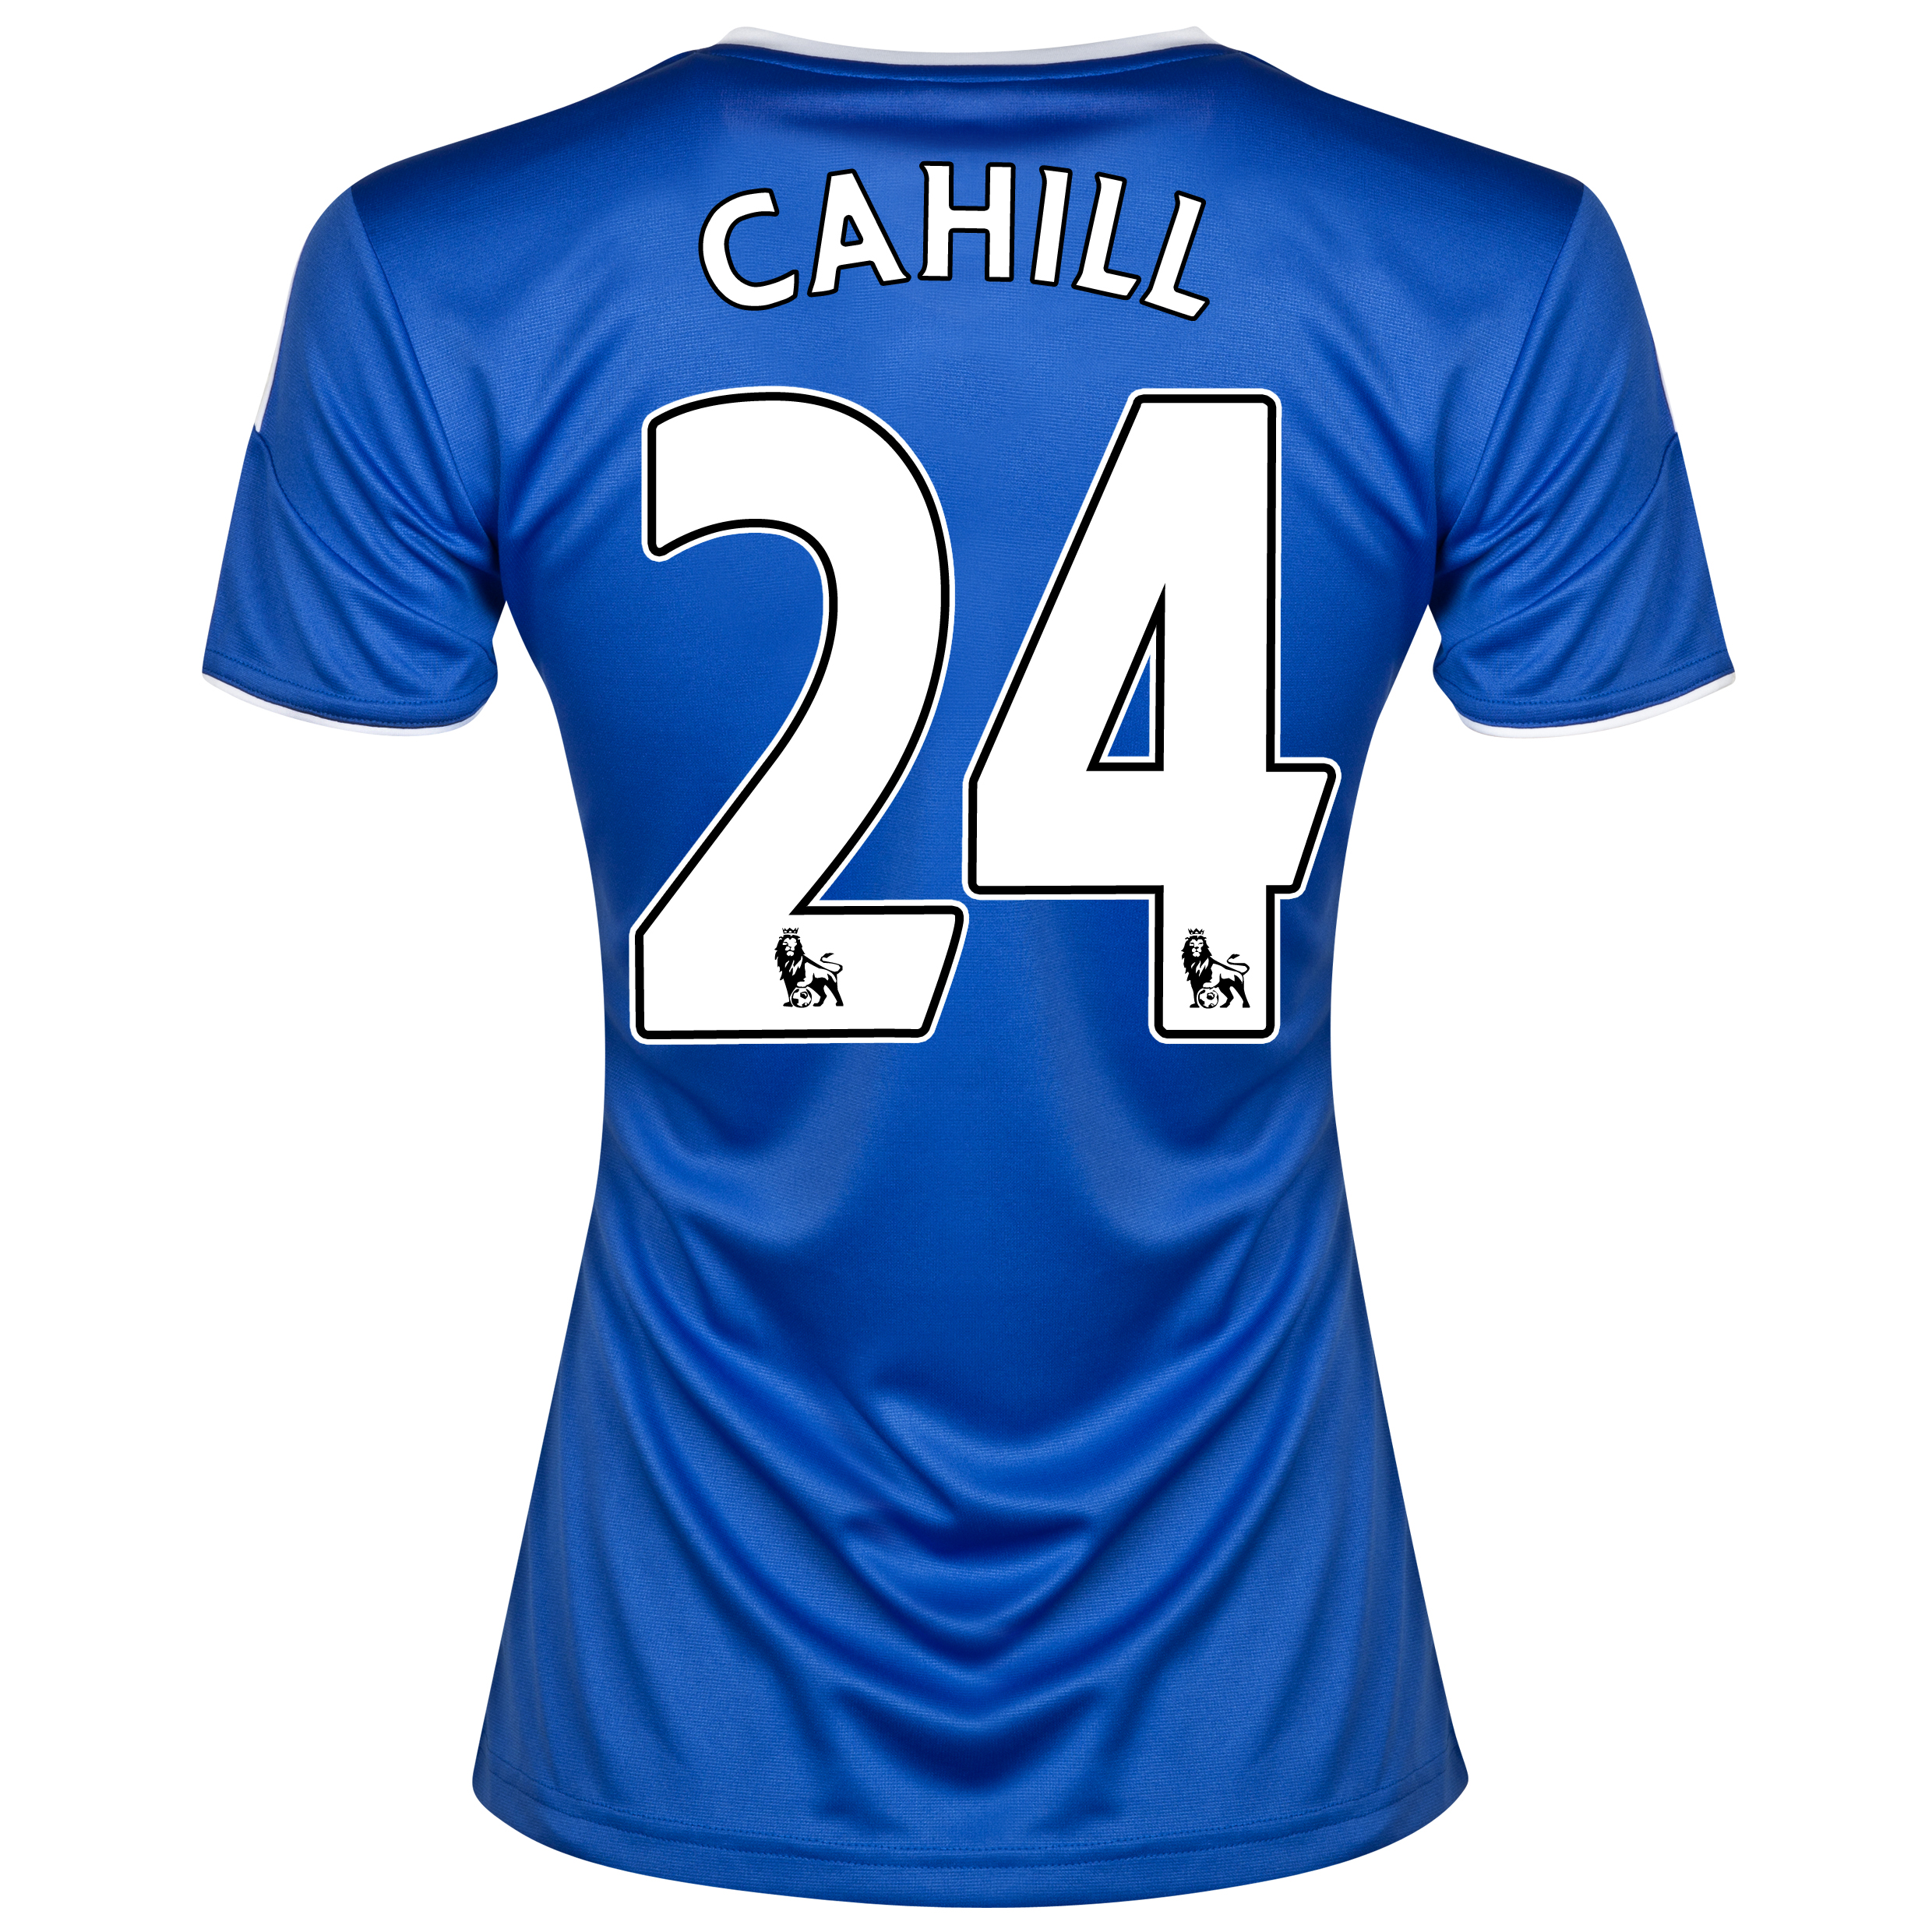 Chelsea Home Shirt 2013/14- Womens with Cahill 24 printing